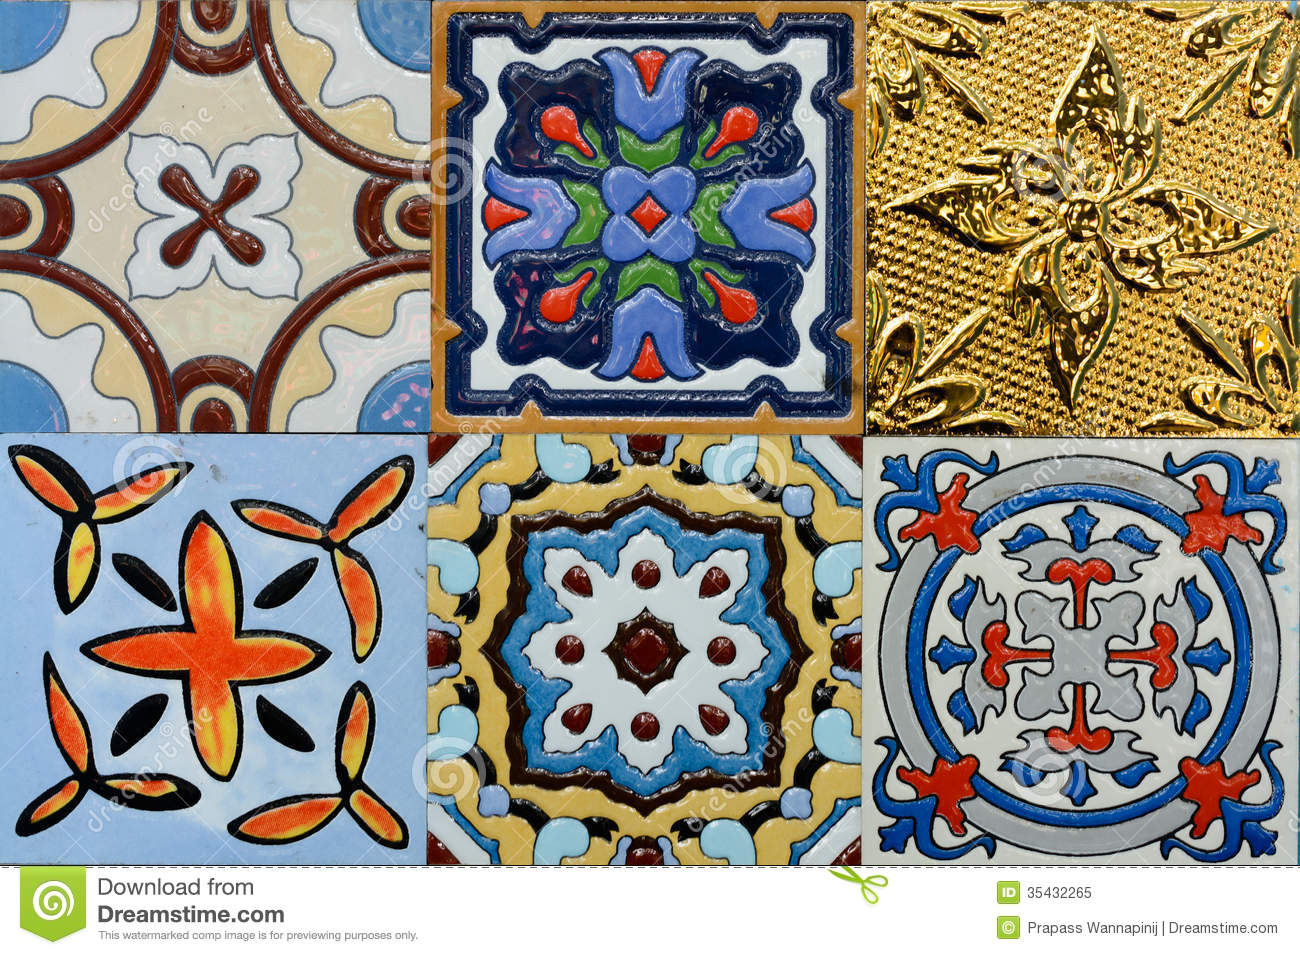 Spanich moroccan style vintage ceramic tile stock image image of spanich moroccan style vintage ceramic tile pattern decorative dailygadgetfo Image collections